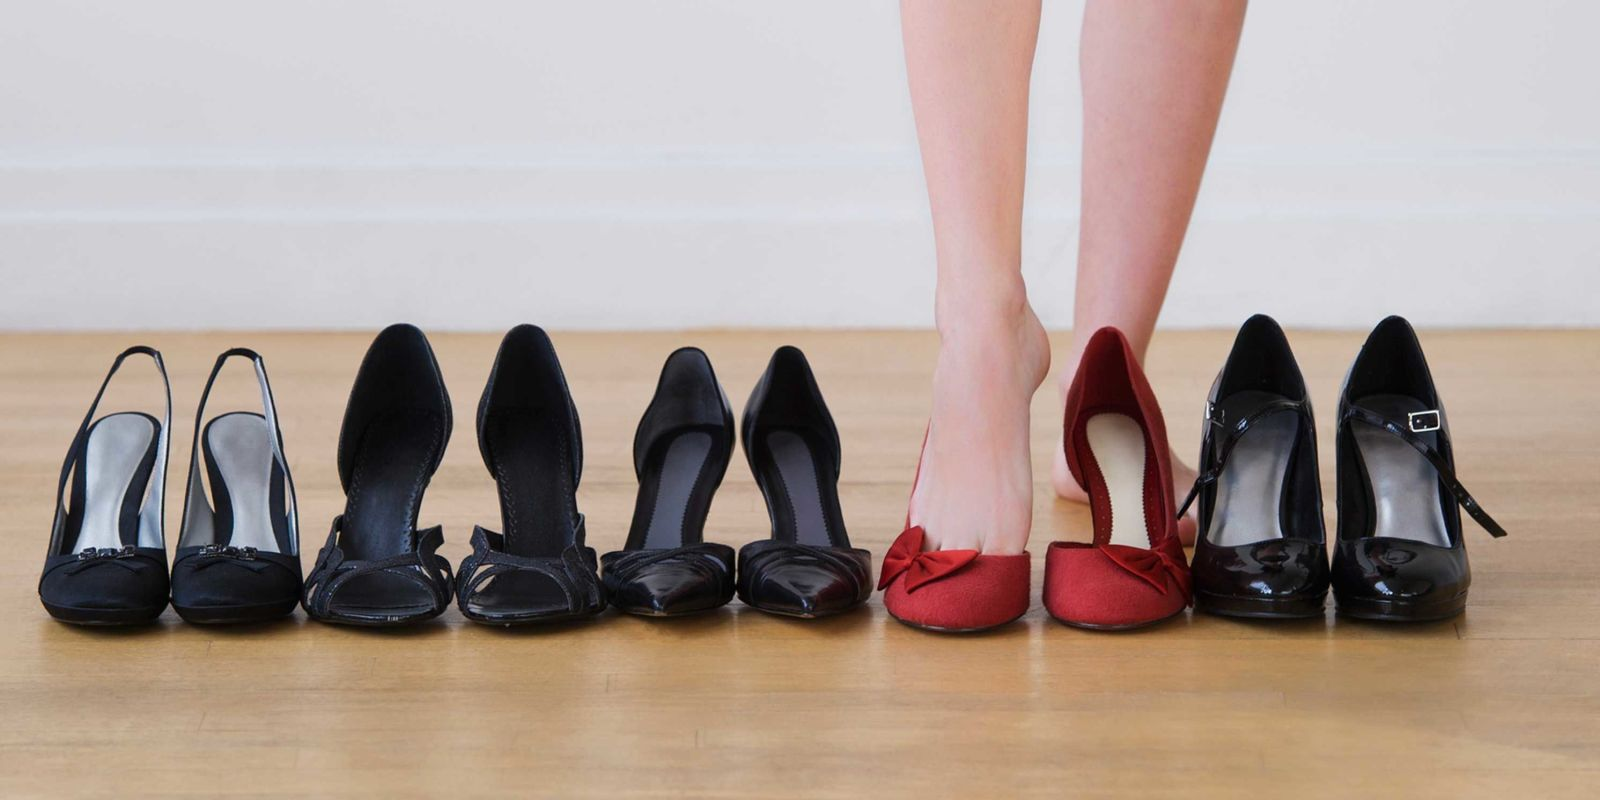 heels high heeled footwear It's a dilemma many women face when they go out — do they want to elongate  their legs by wearing high heeled shoes for an event, or still be.